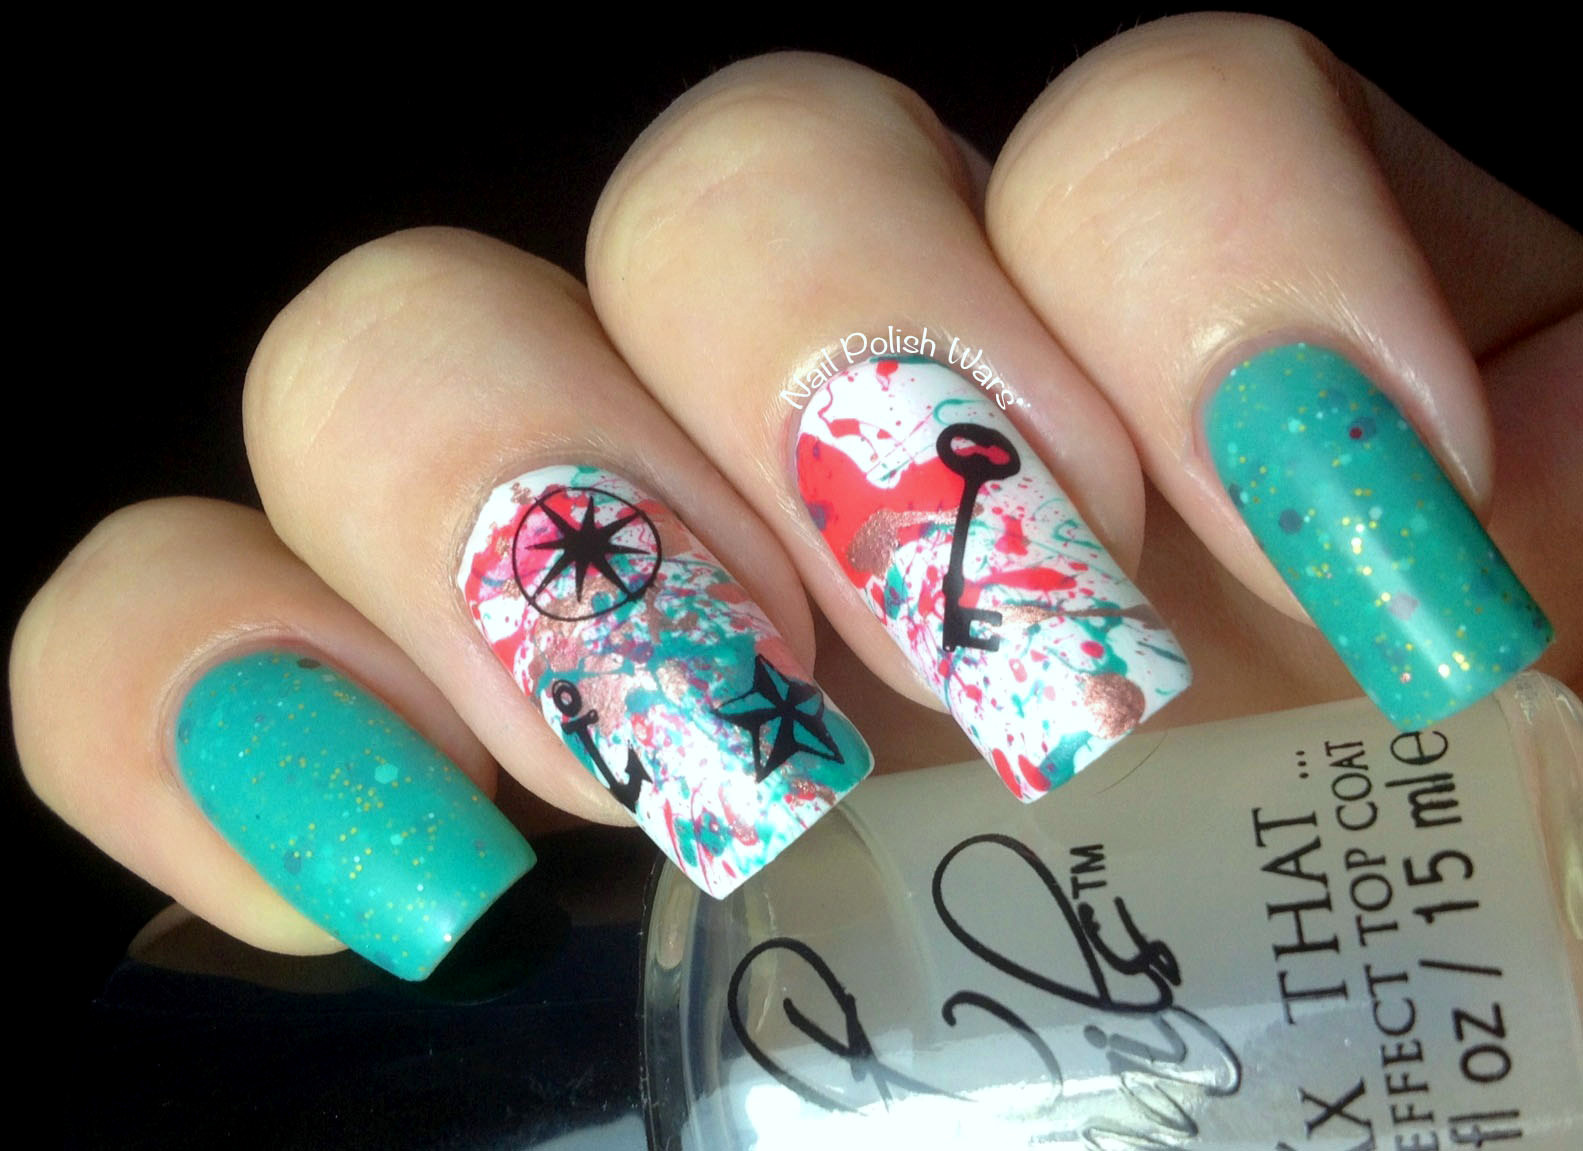 Nail Polish Wars: Splattered Tattoos